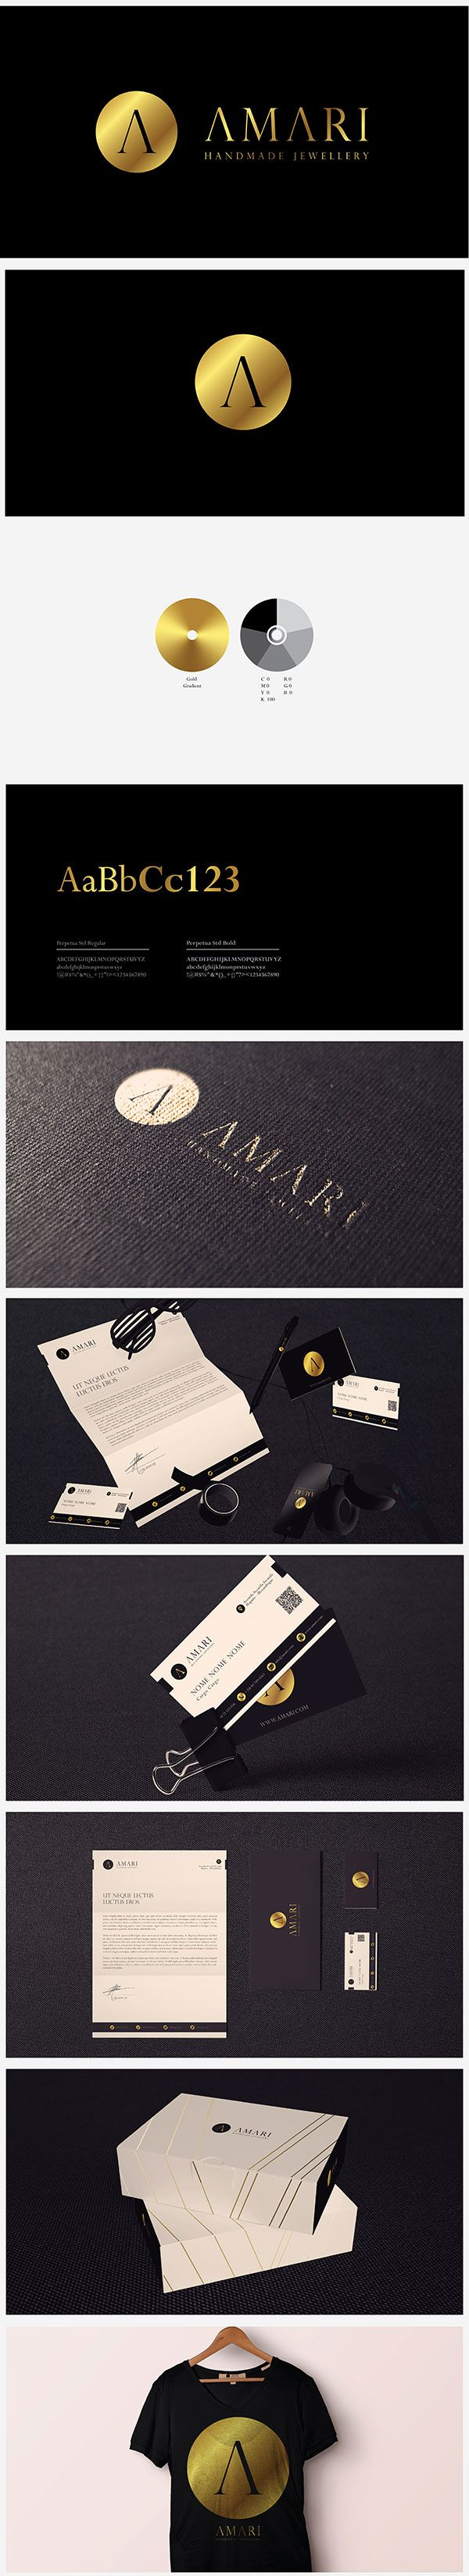 AMARI is a newely established Jewellery brand. They have been in the market for over ten year but without a defined brand name and identity. In order to expand and solidify the business it was decided that it would need a new brand and image. Thus, NSV Design was chosen to design the new face of the business. The client asked for an identity that would portrait luxury by using tones of gold contrasted in black backgrounds.  Enjoy!